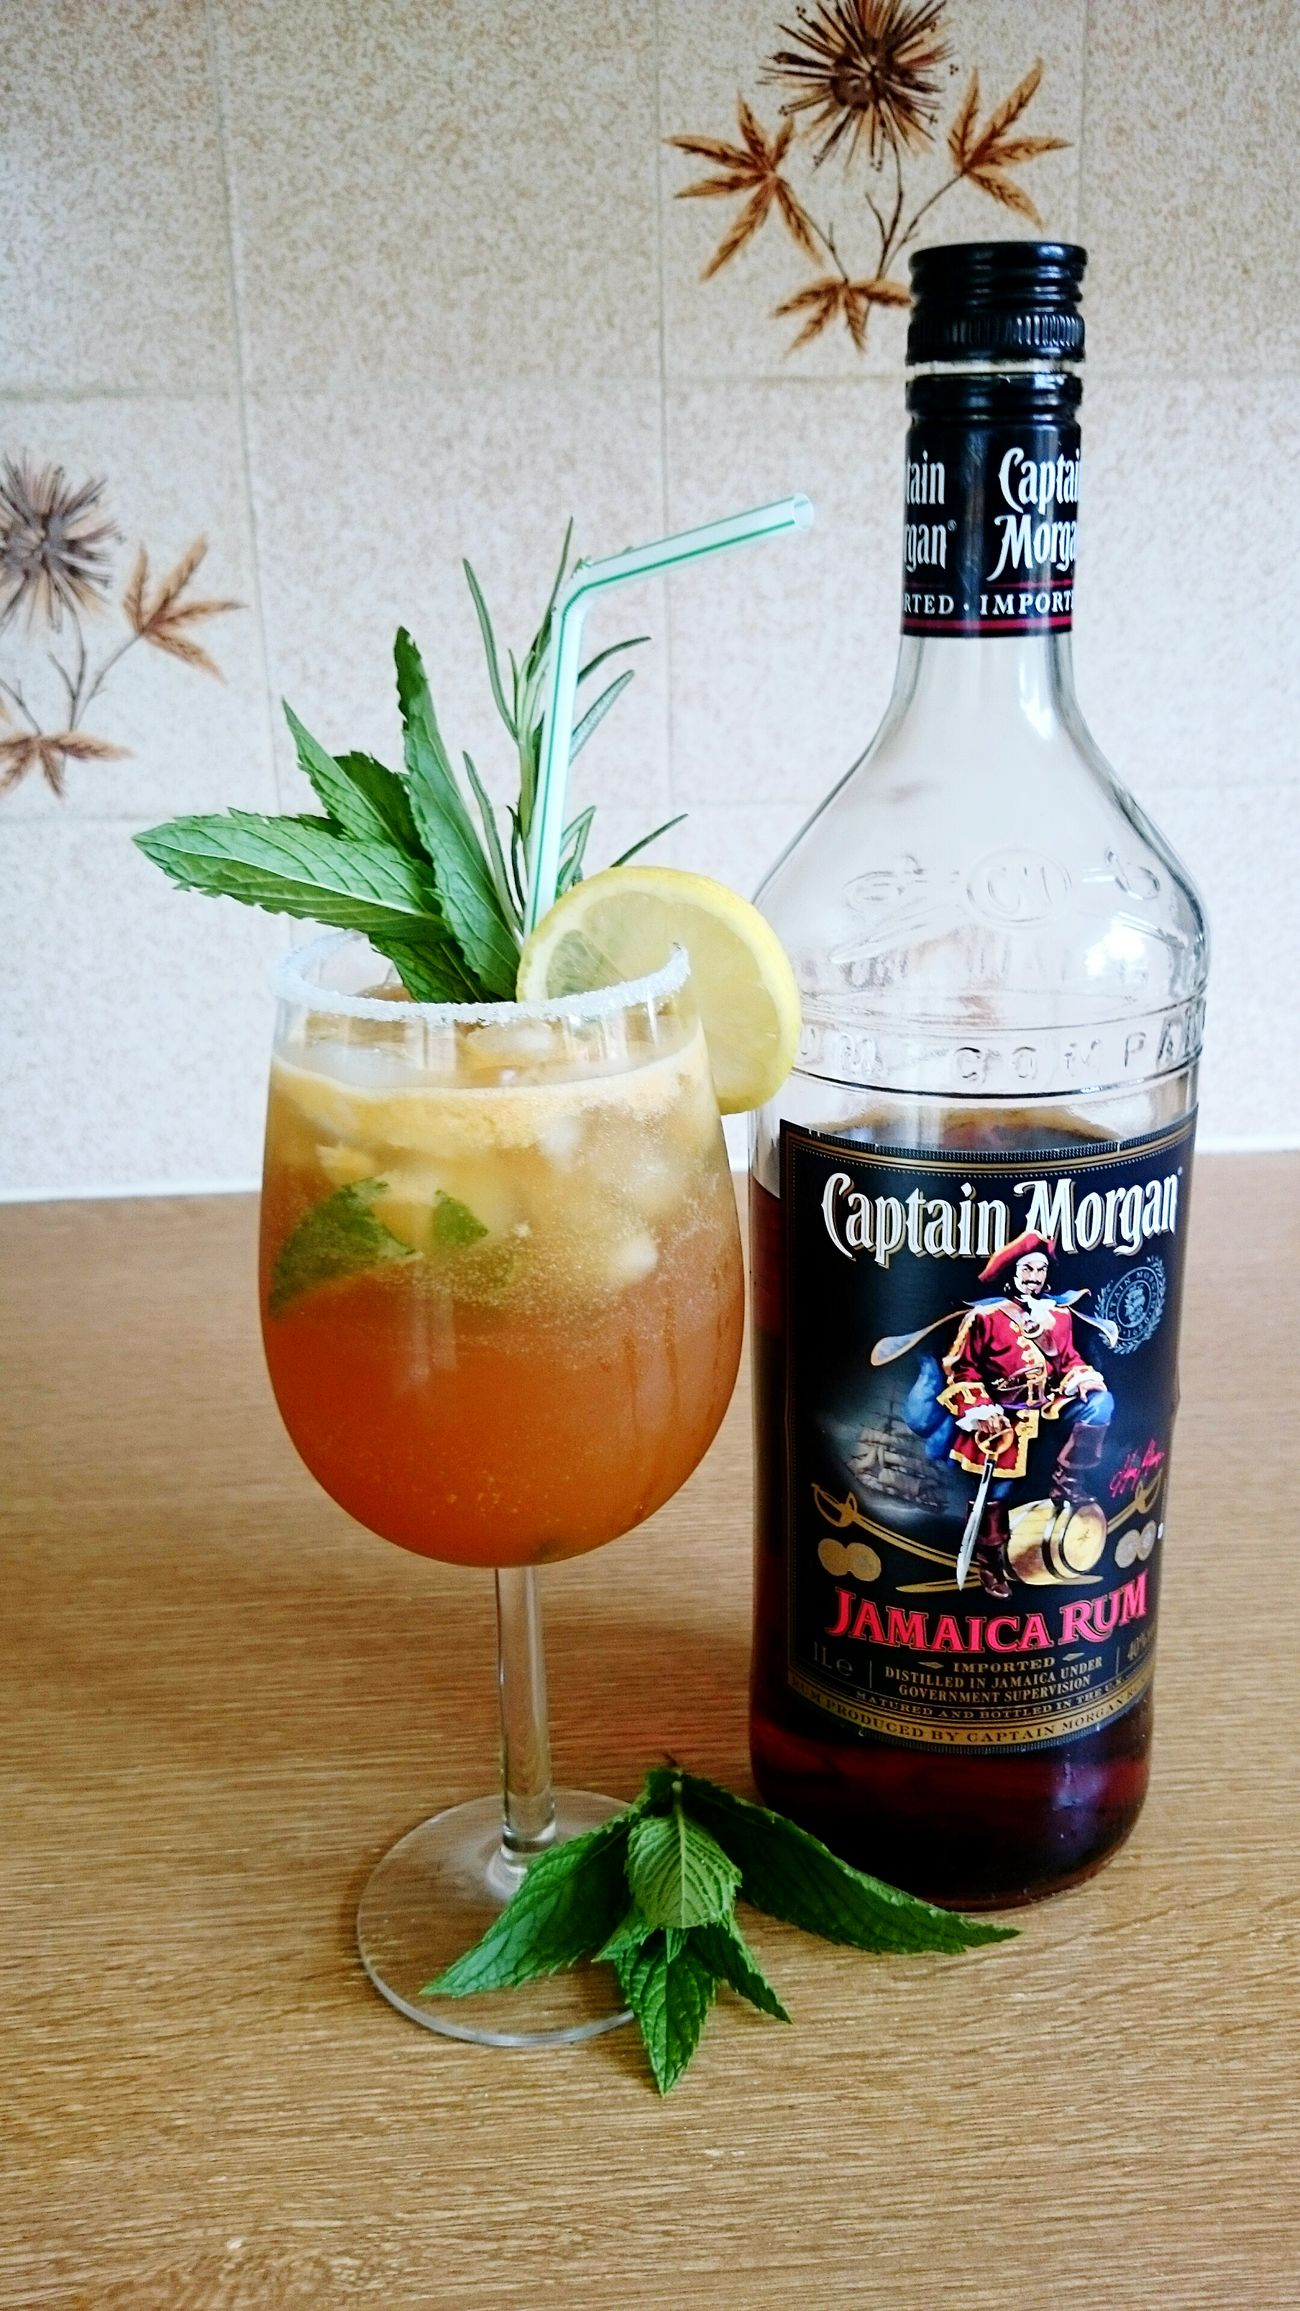 Taking Photos Cocktail Time Captain Morgan Cheers Joinme? Woo Hoo! Enjoying Life Happiness Hello World